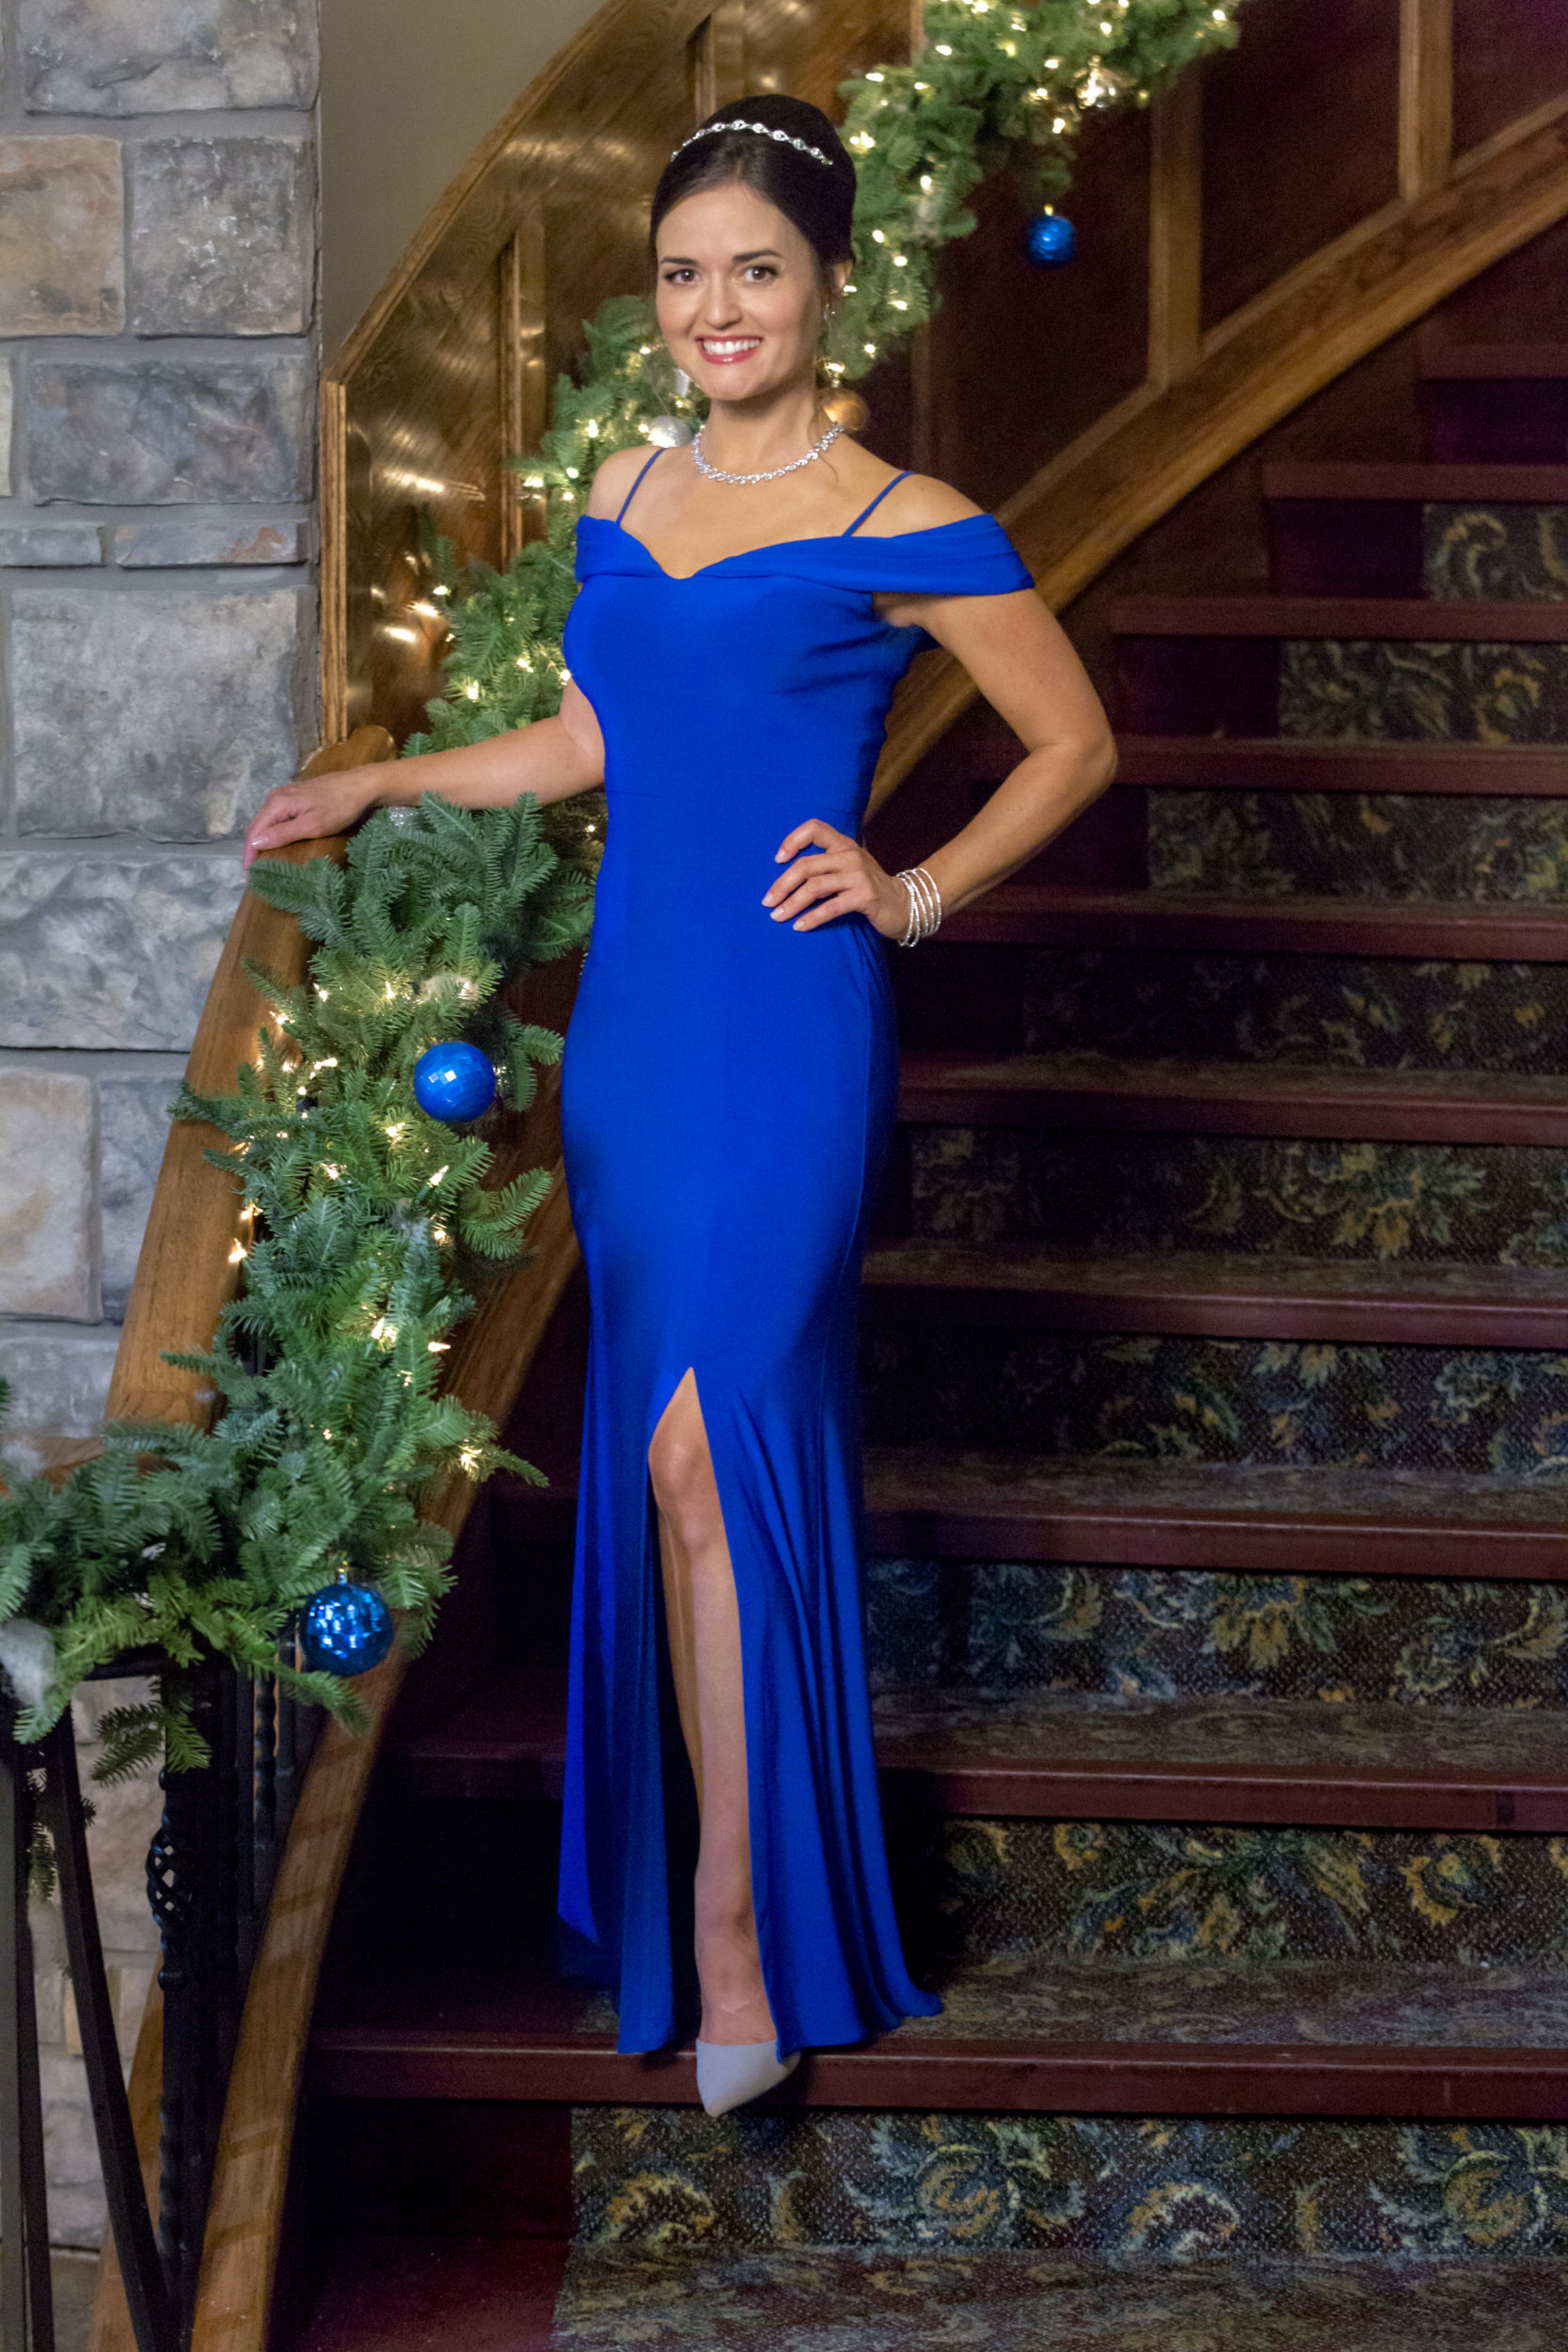 danica mckellar as lizzie on coming home for christmas hallmark channel - Coming Home For Christmas